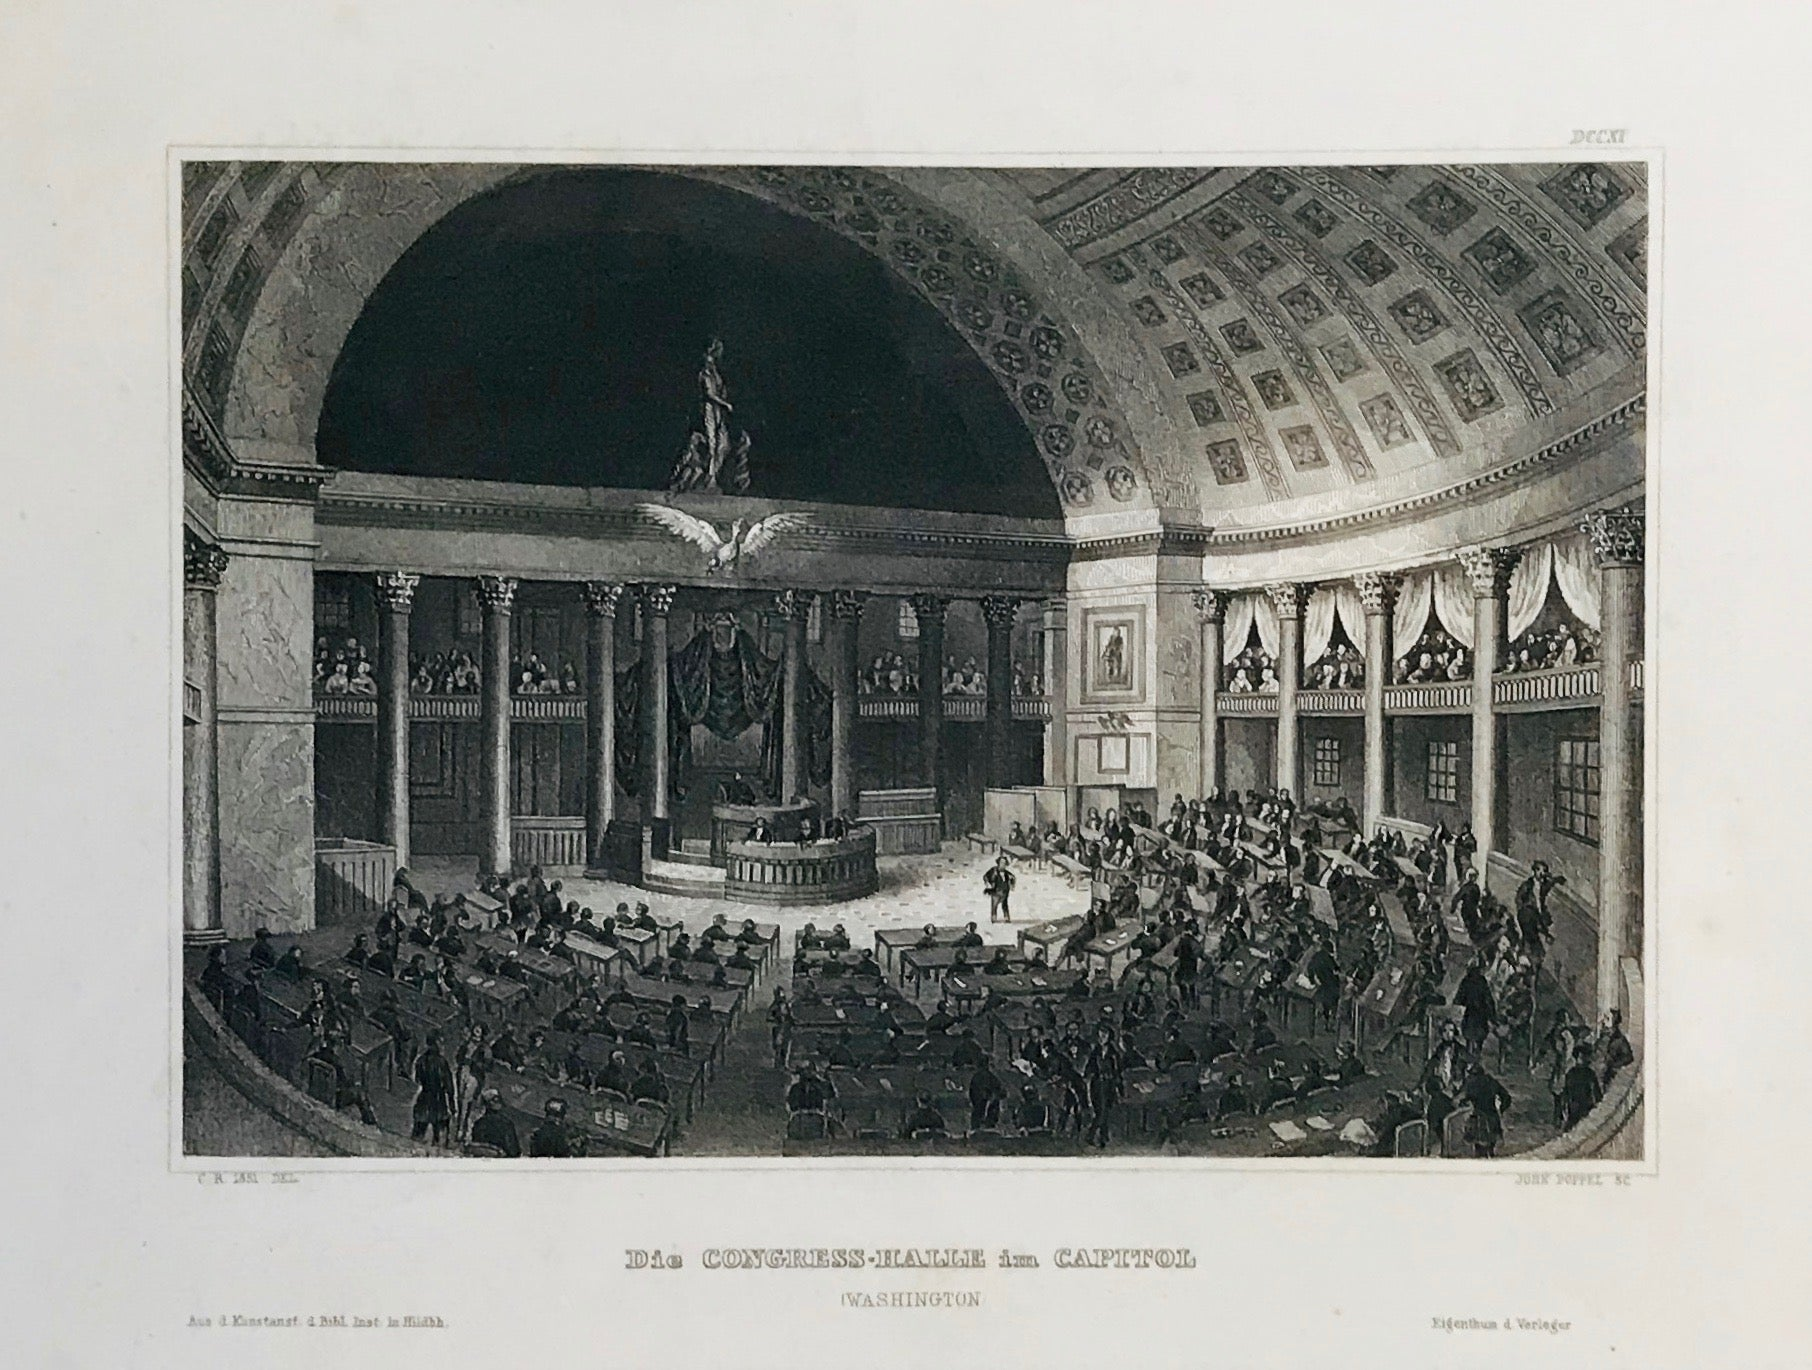 """Die Congress-Halle im Capitol"" (Washington)  Steel engraving from Bibliograph. Institut in Hildburghausen, ca 1850. A few minor spots in margin."